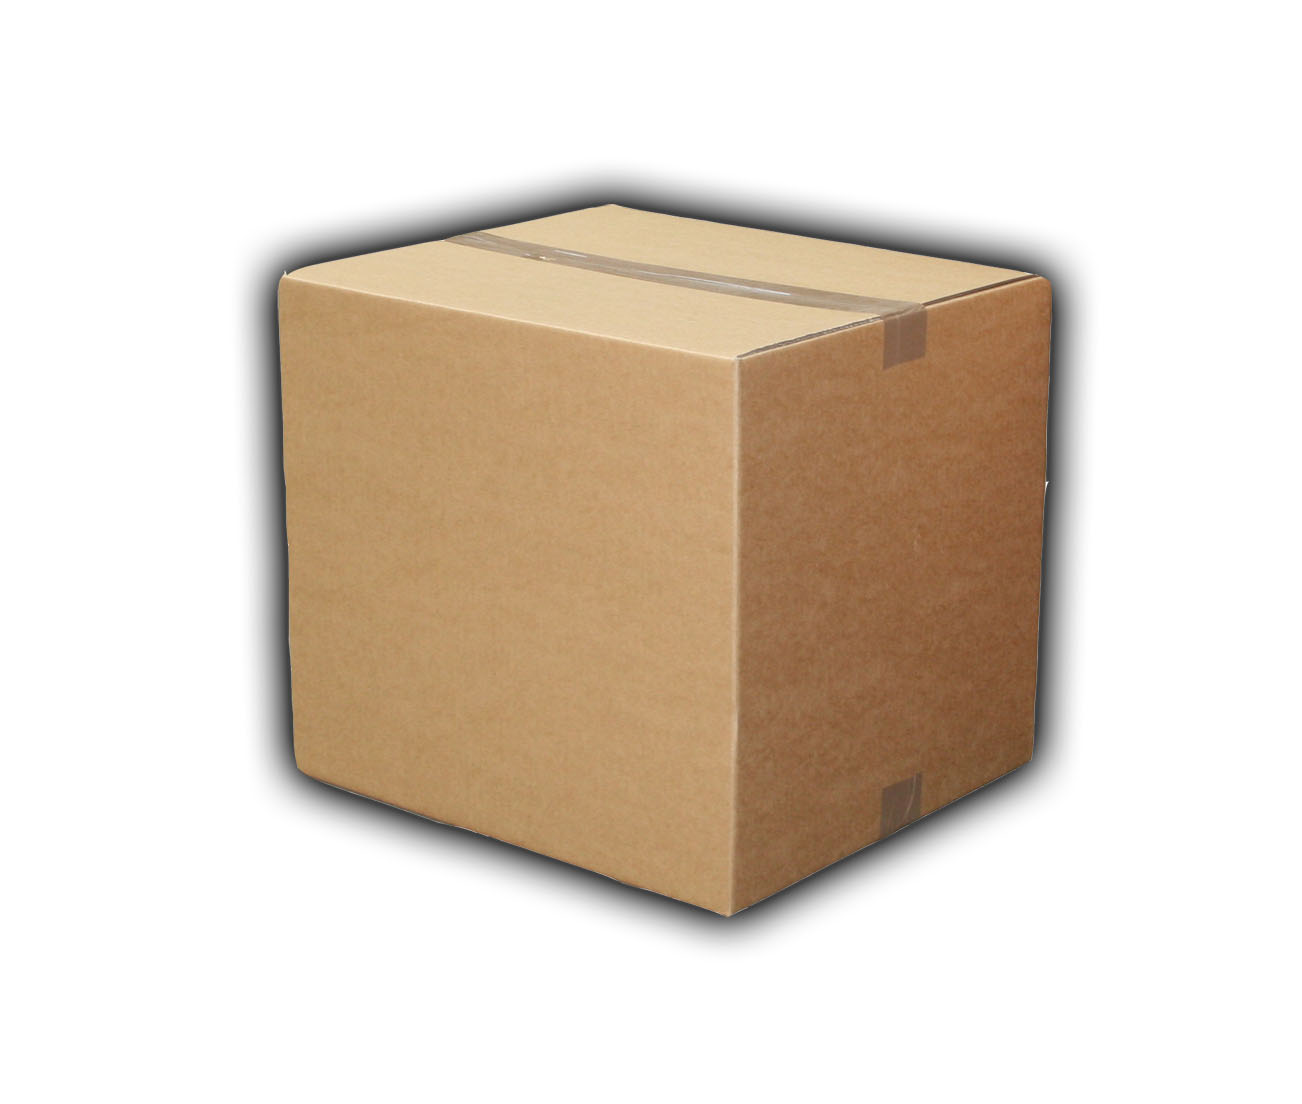 Single Packing Boxes